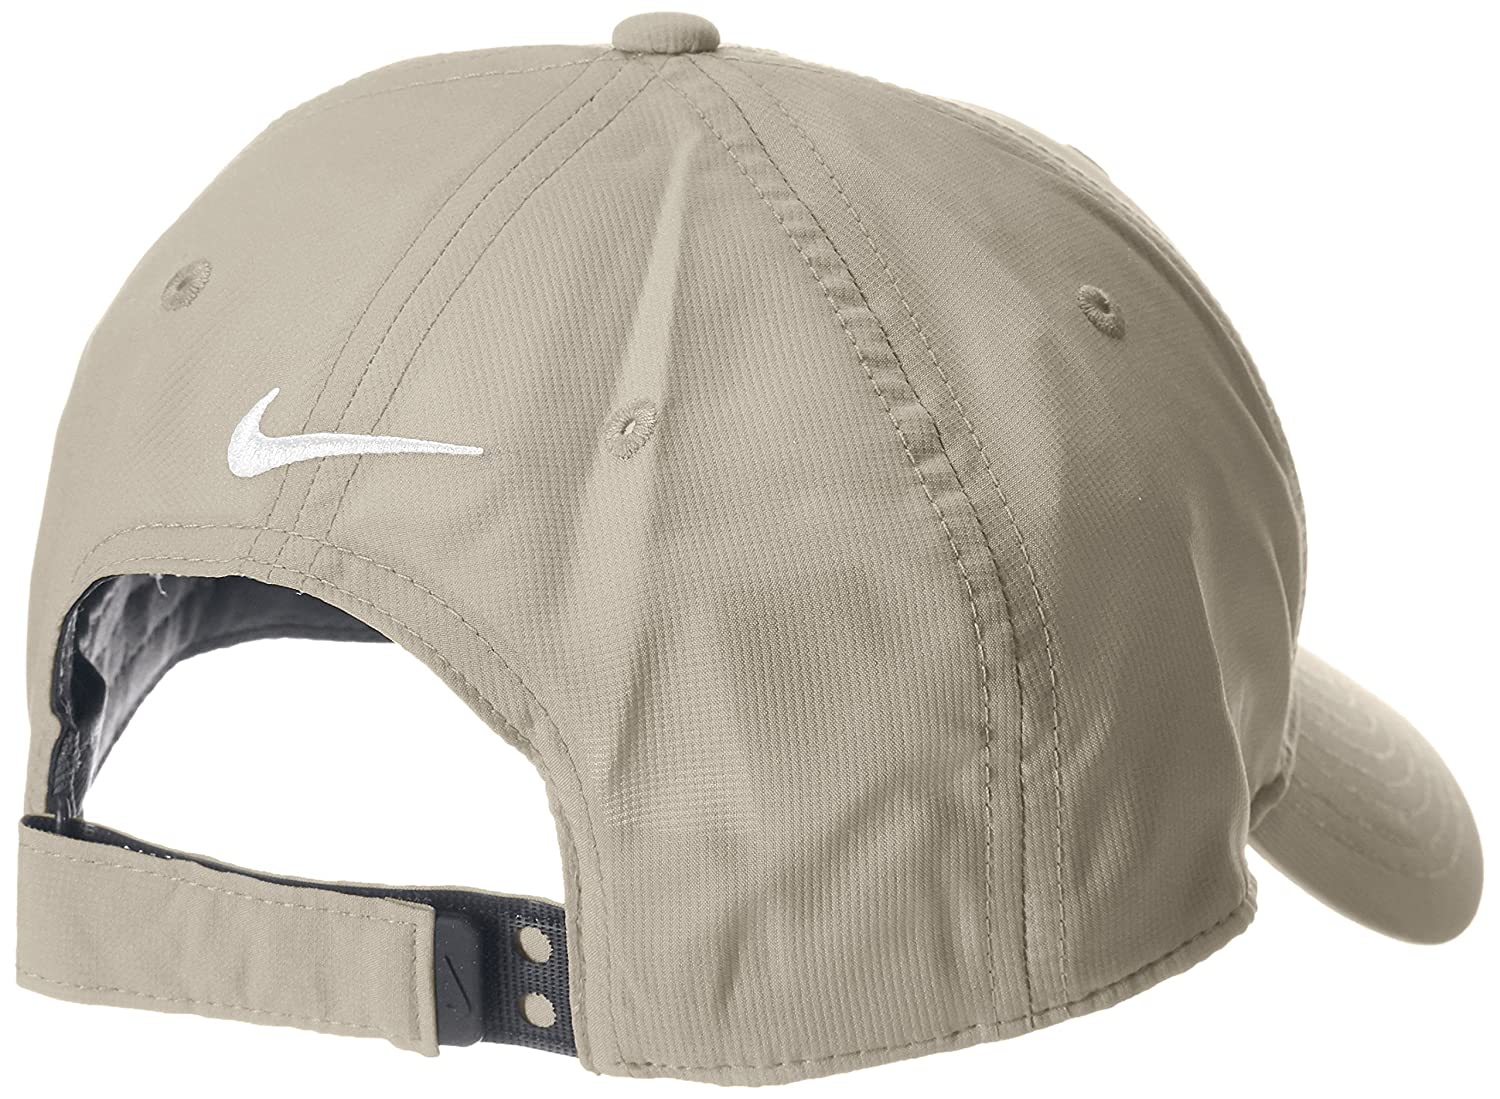 NIKE Legacy 91 Tech Adjustable Golf Cap Hat - Beige - One size   Amazon.co.uk  Clothing ac53a44a9872